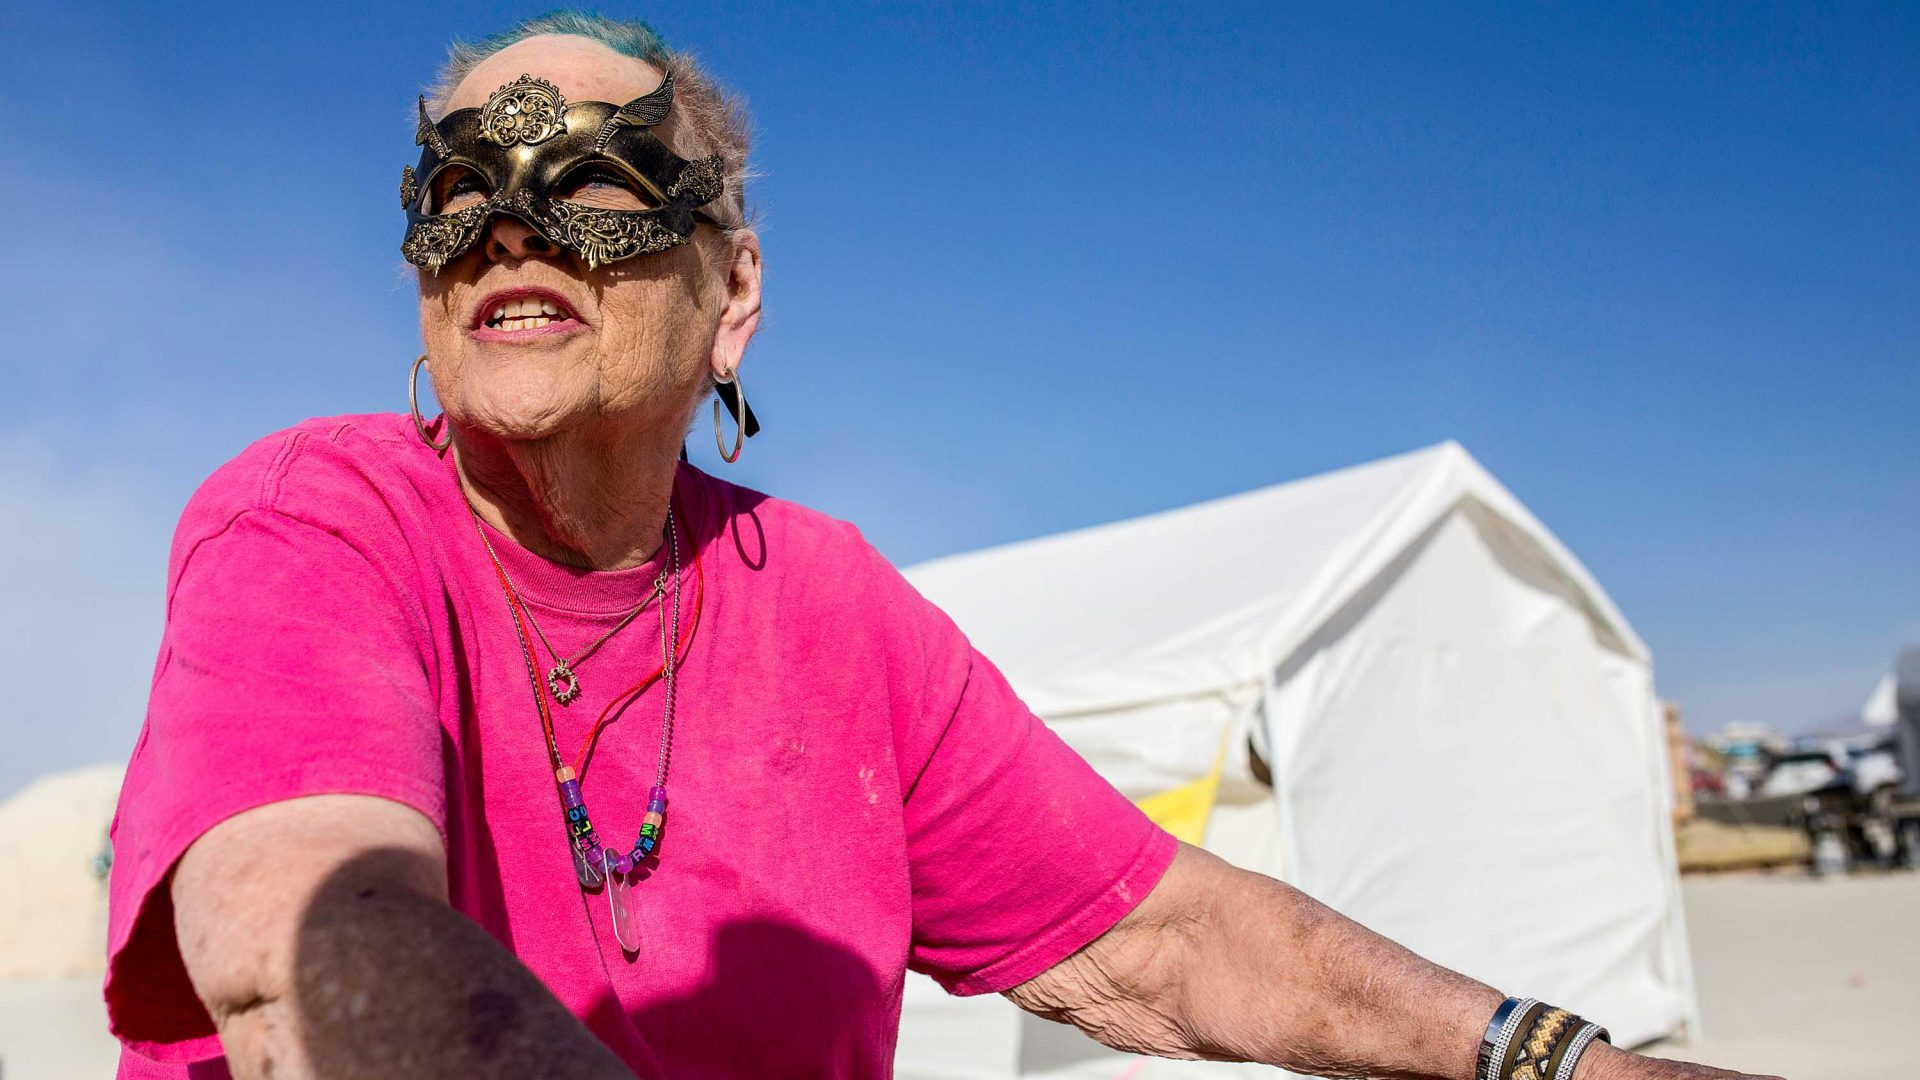 Carolyn Monroe, 81, on her tricycle at Burning Man.